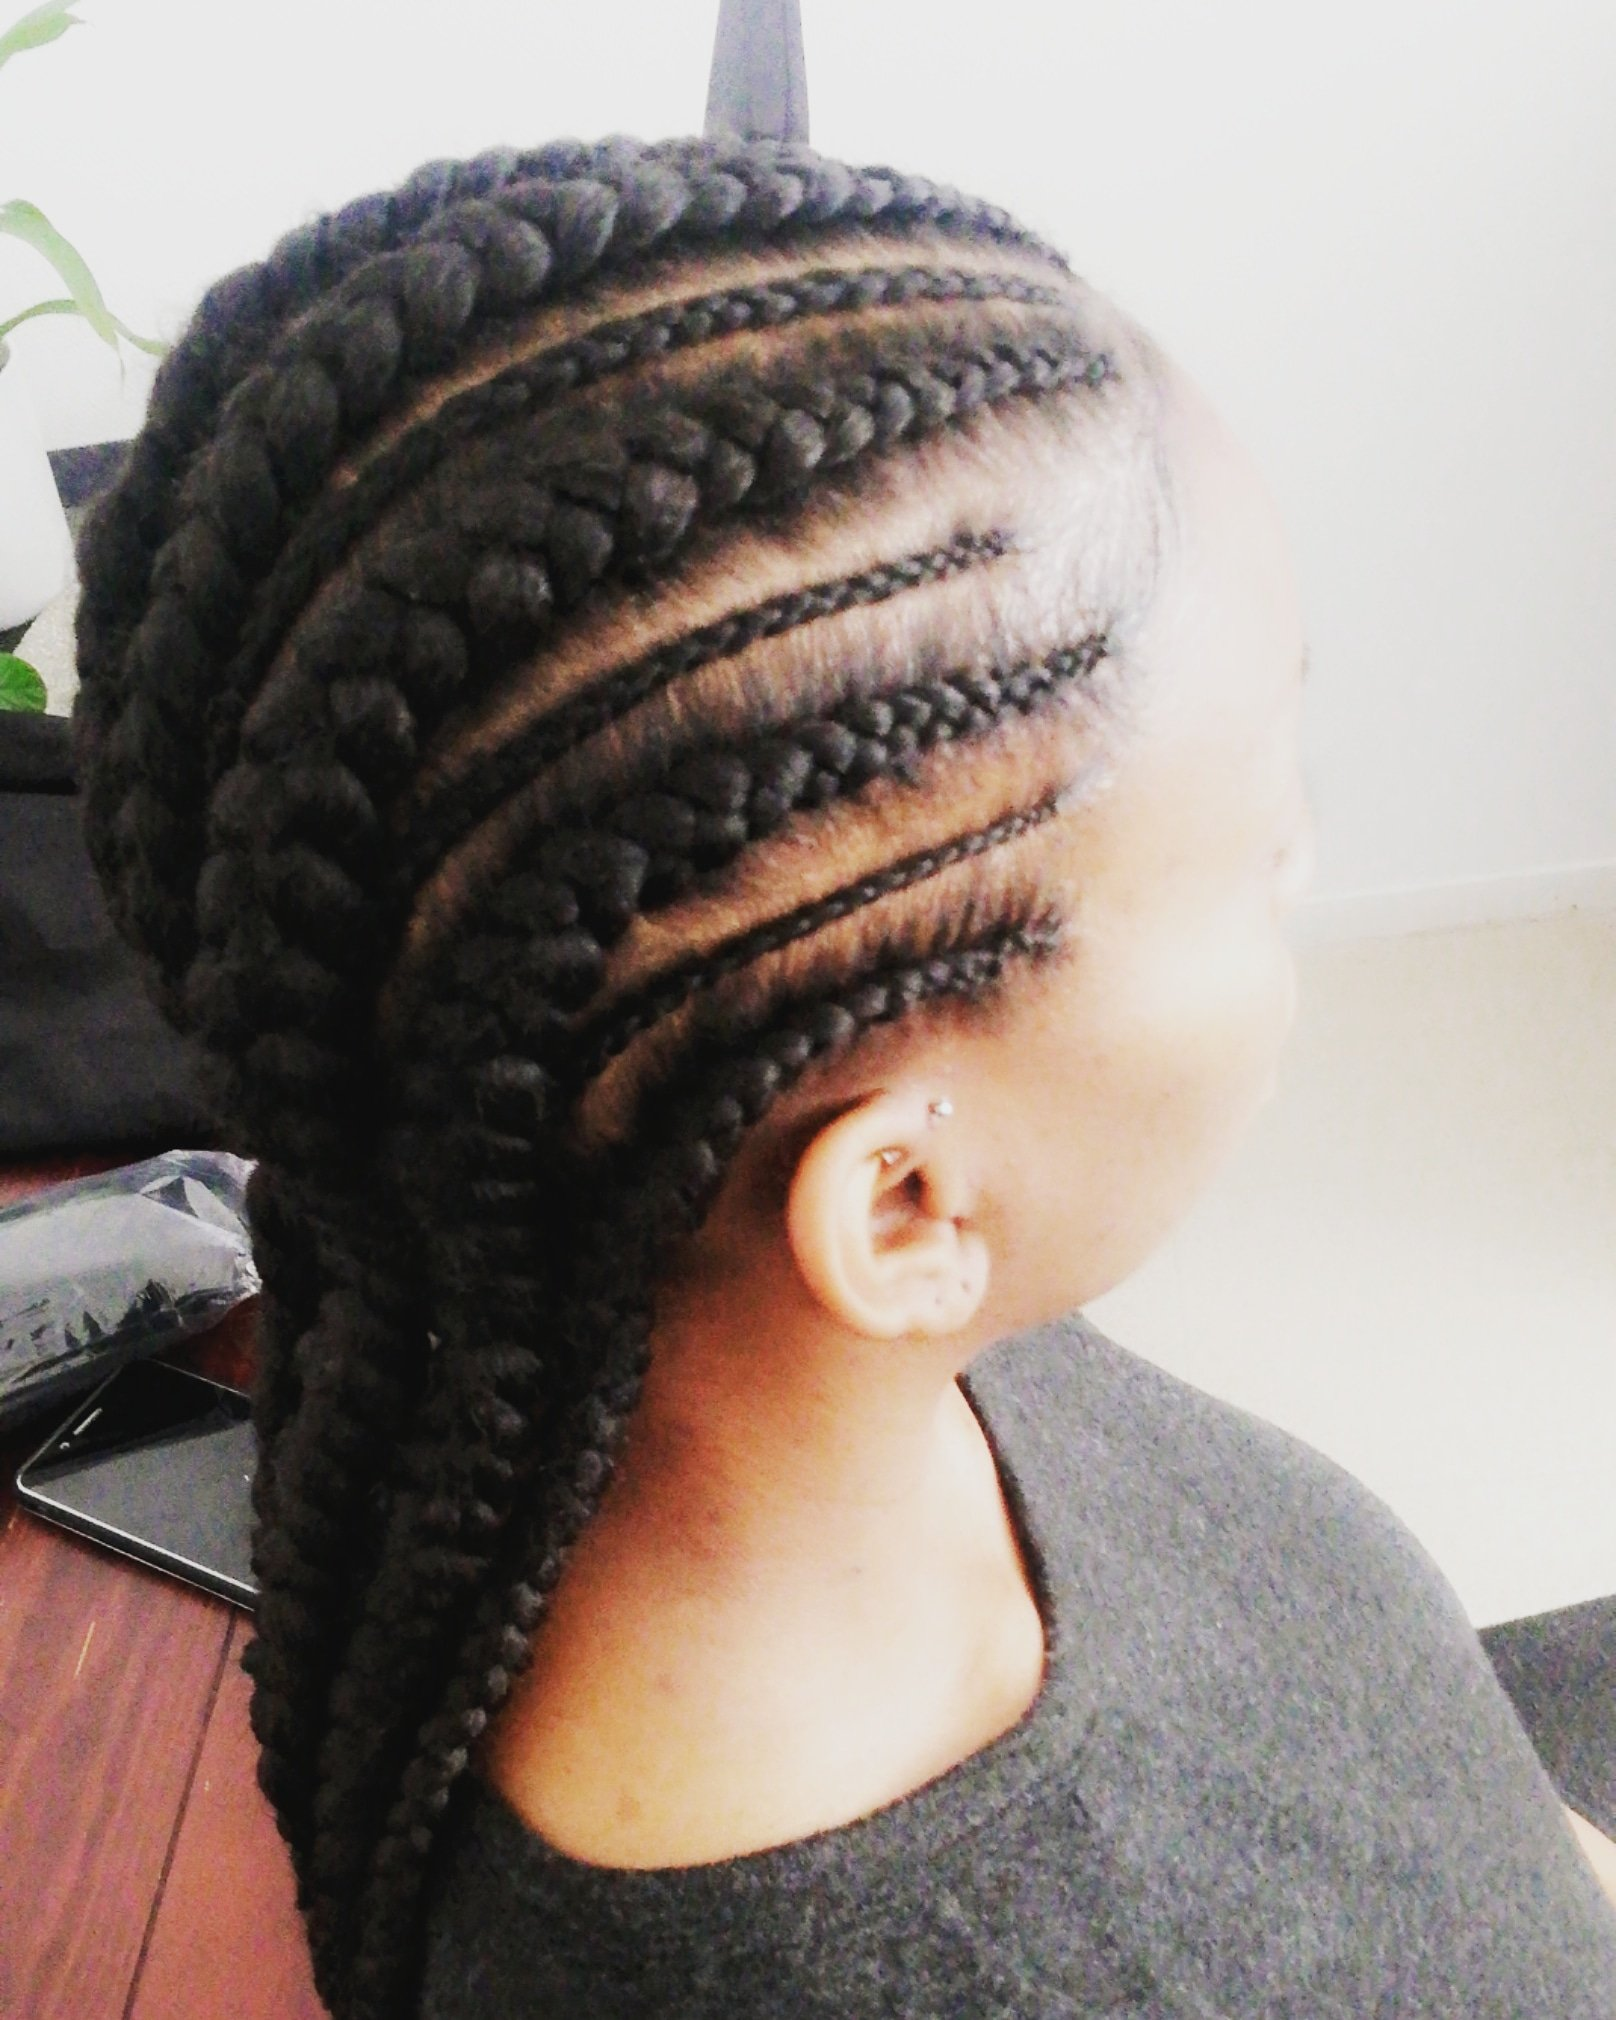 salon de coiffure afro tresse tresses box braids crochet braids vanilles tissages paris 75 77 78 91 92 93 94 95 EINMVIZA